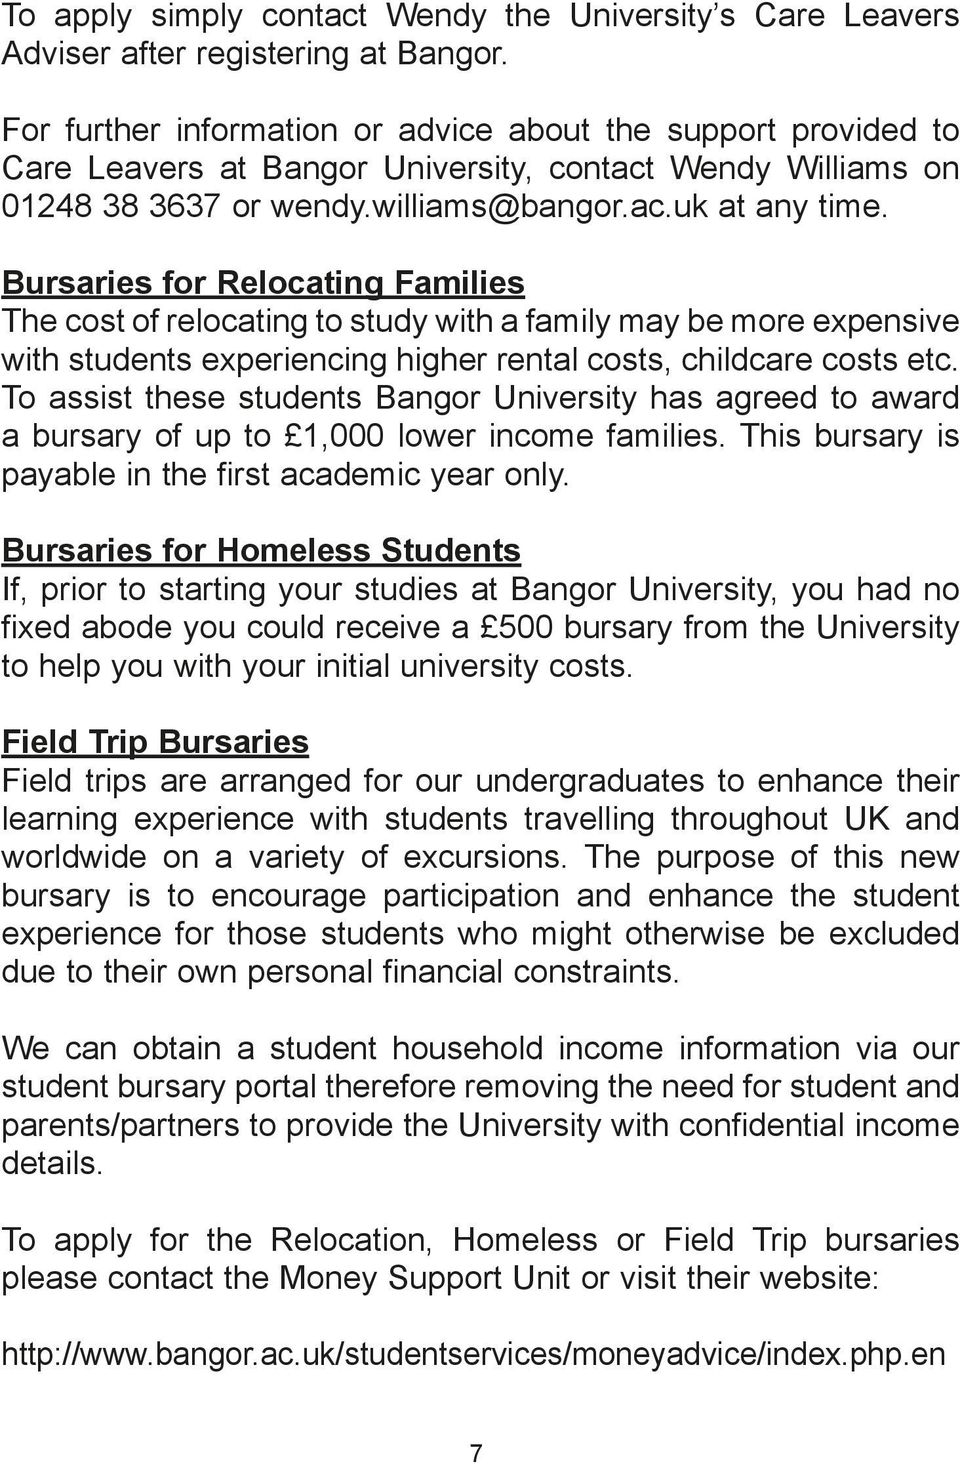 Bursaries for Relocating Families The cost of relocating to study with a family may be more expensive with students experiencing higher rental costs, childcare costs etc.